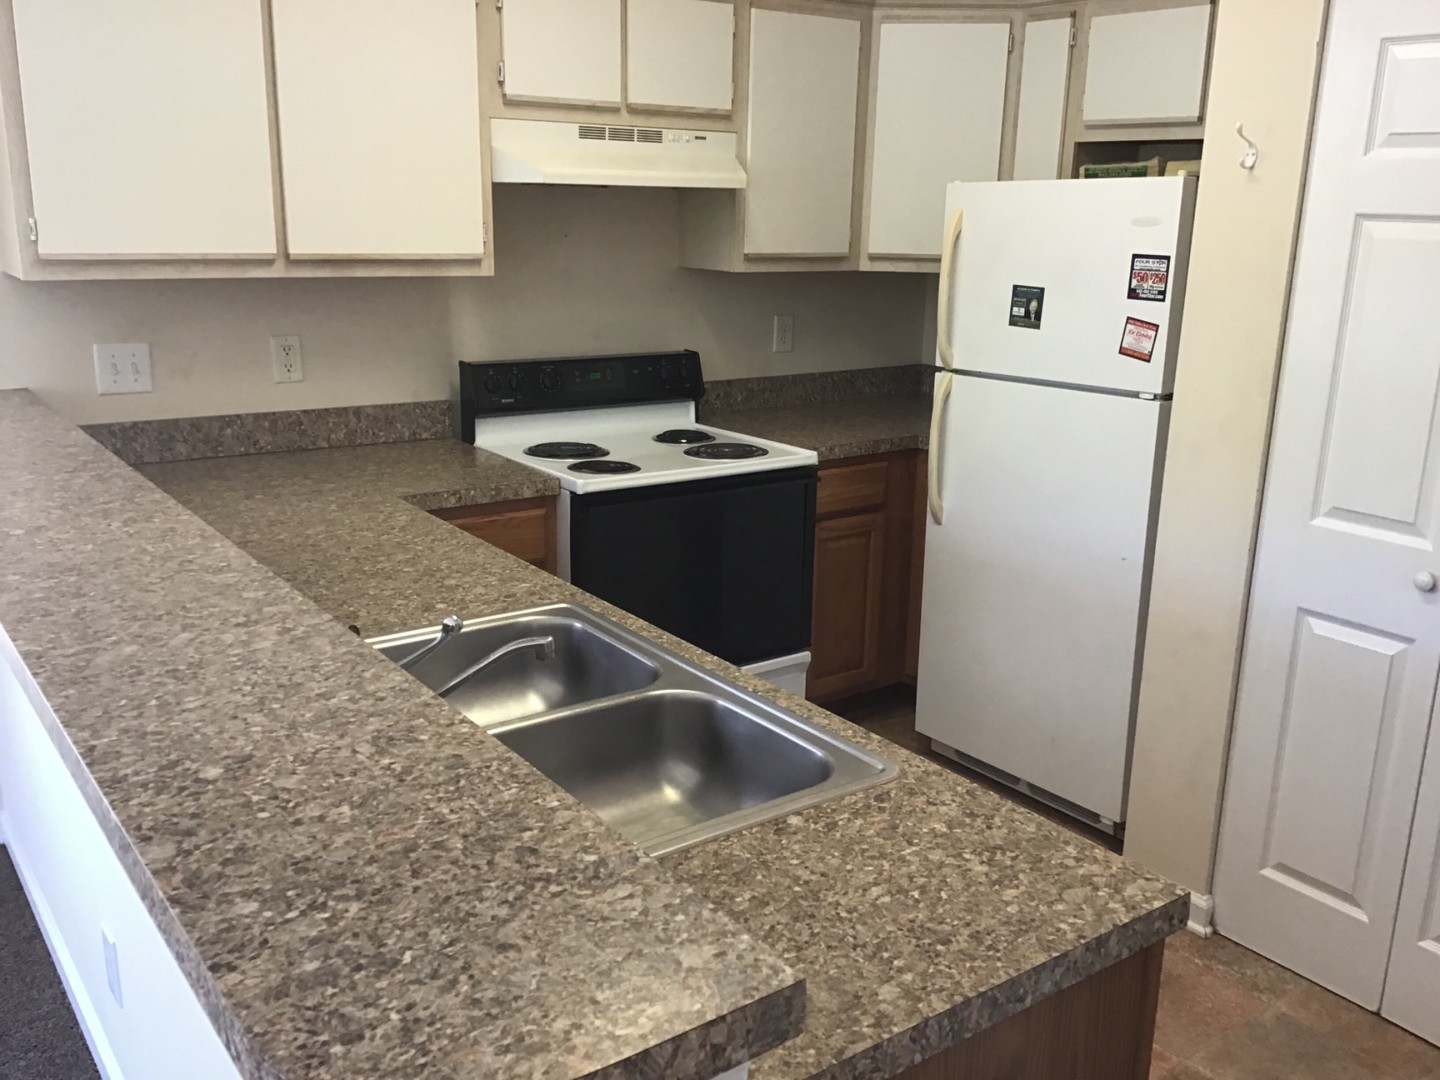 Unfurnished 1 Bedroom Condo In River Oaks